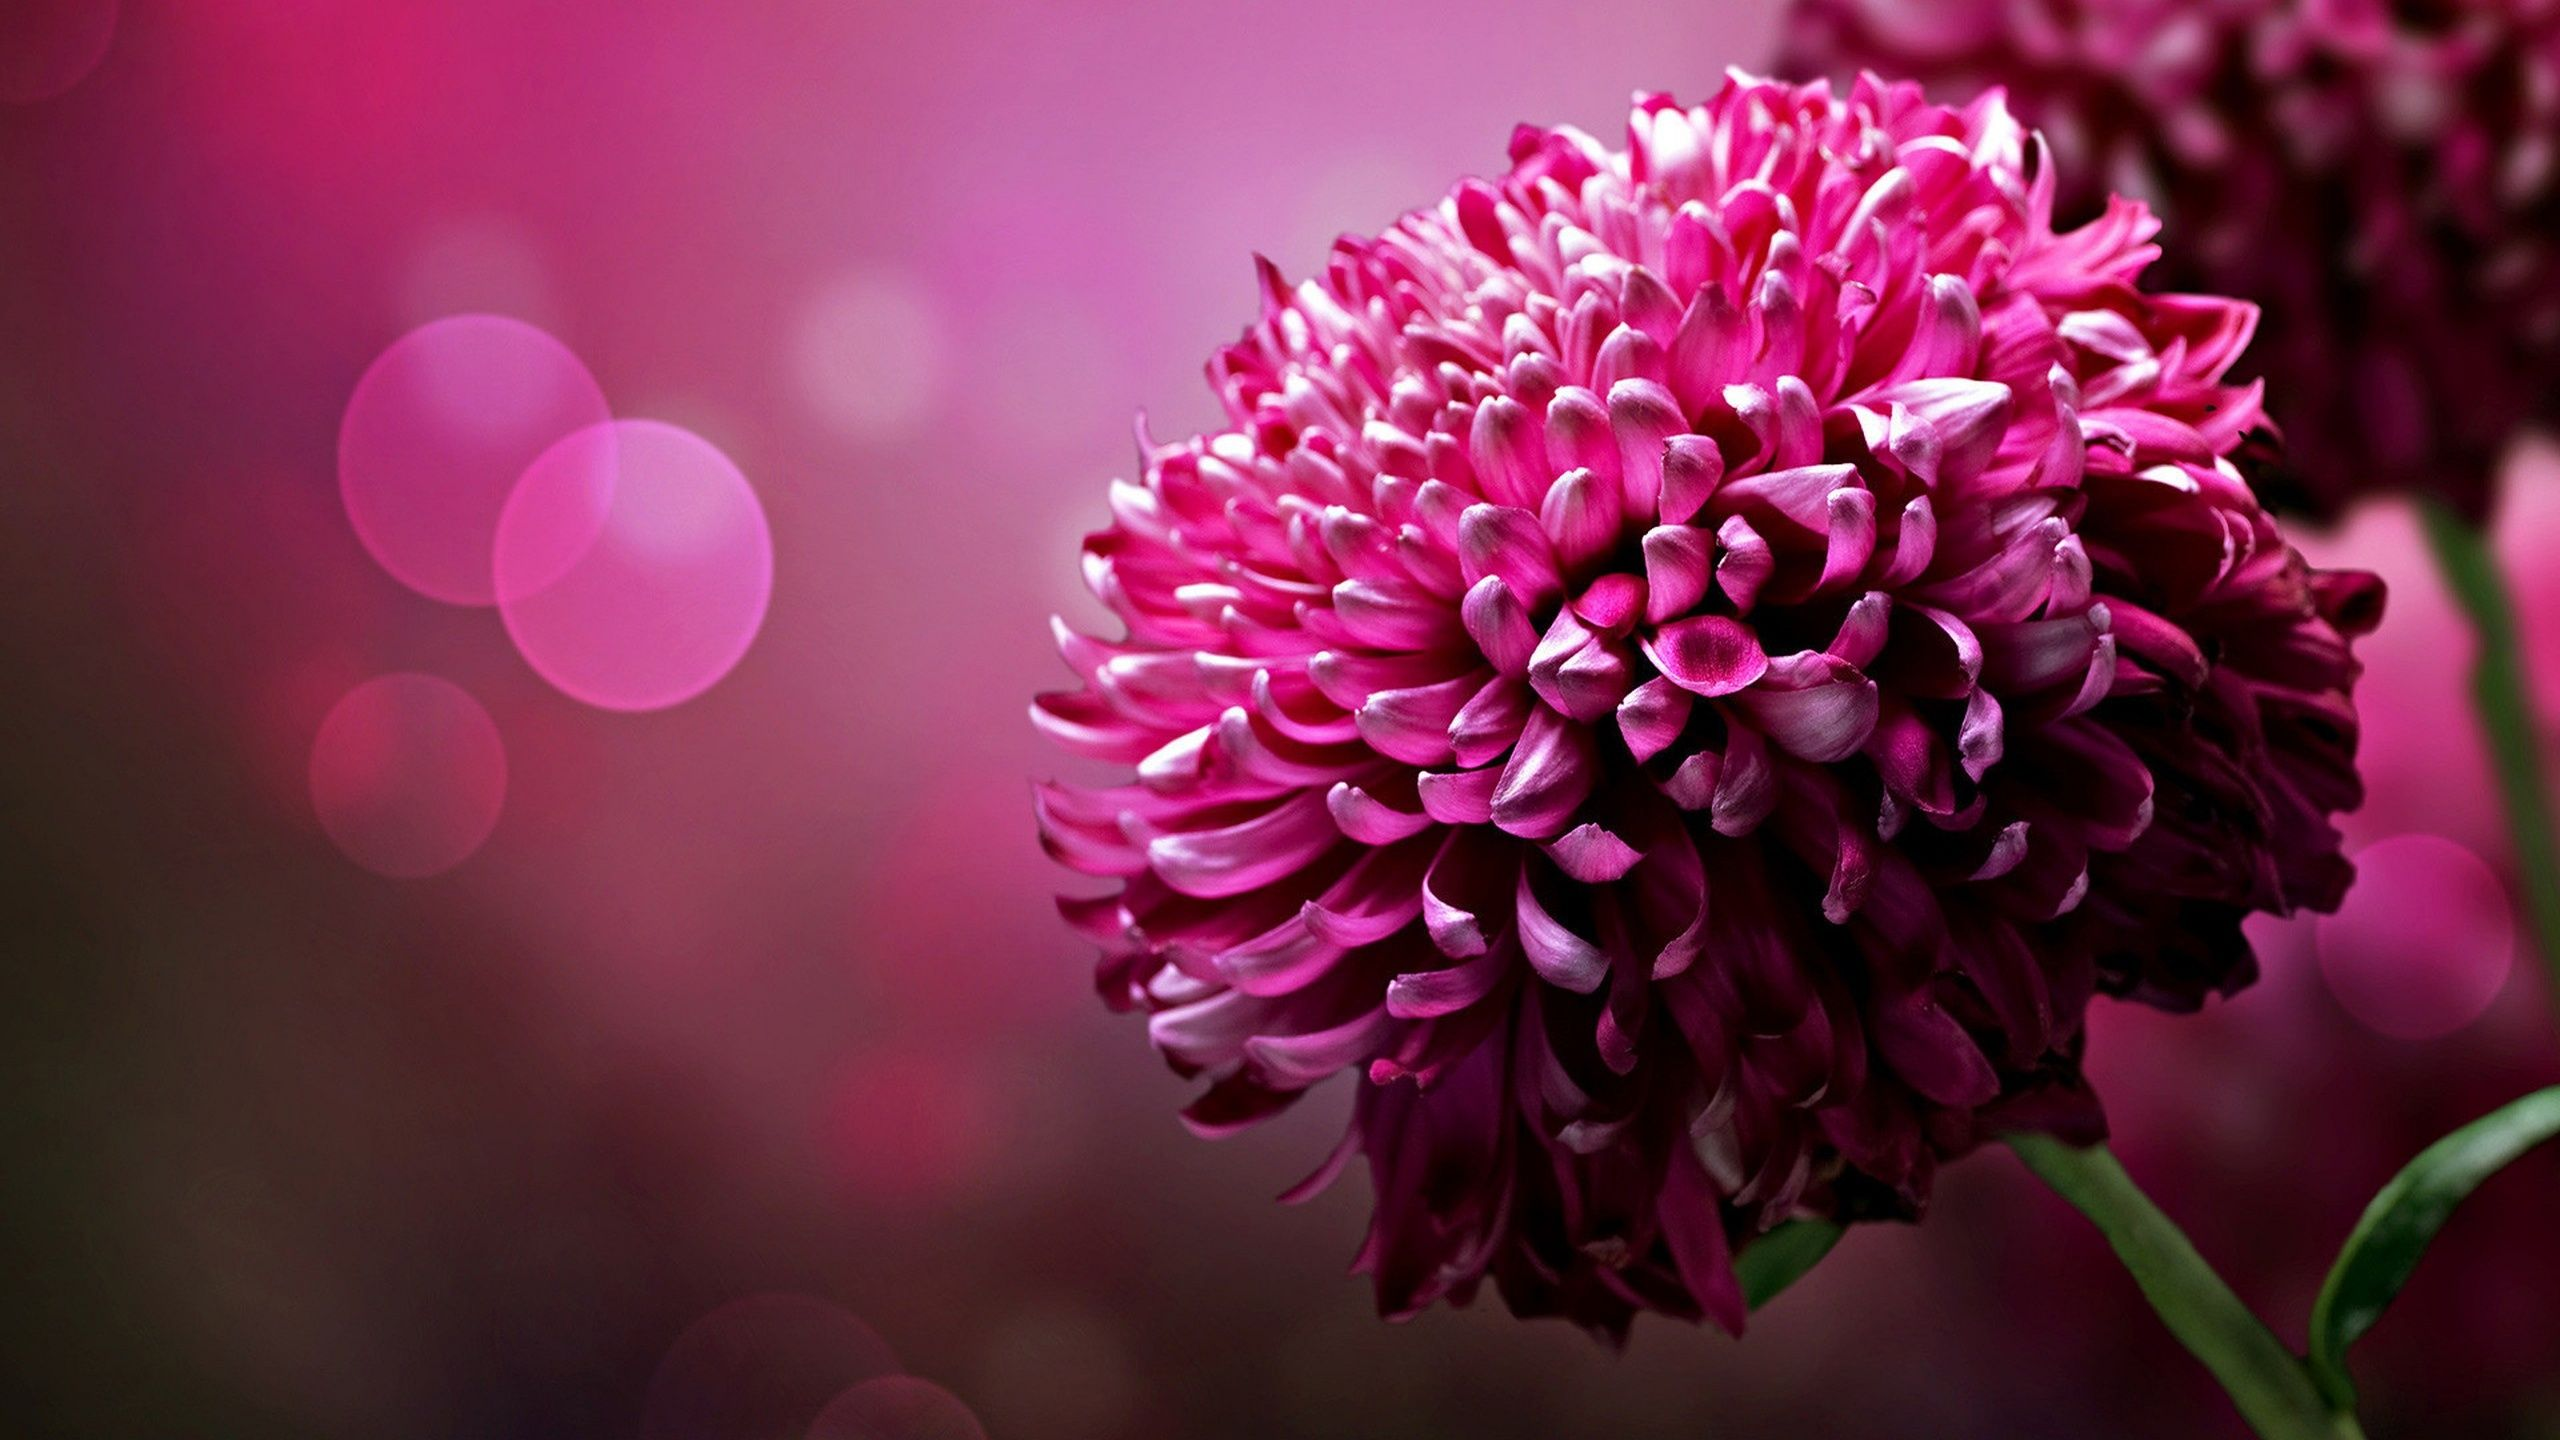 flower wallpapers pink high quality resolution | phone & desktop